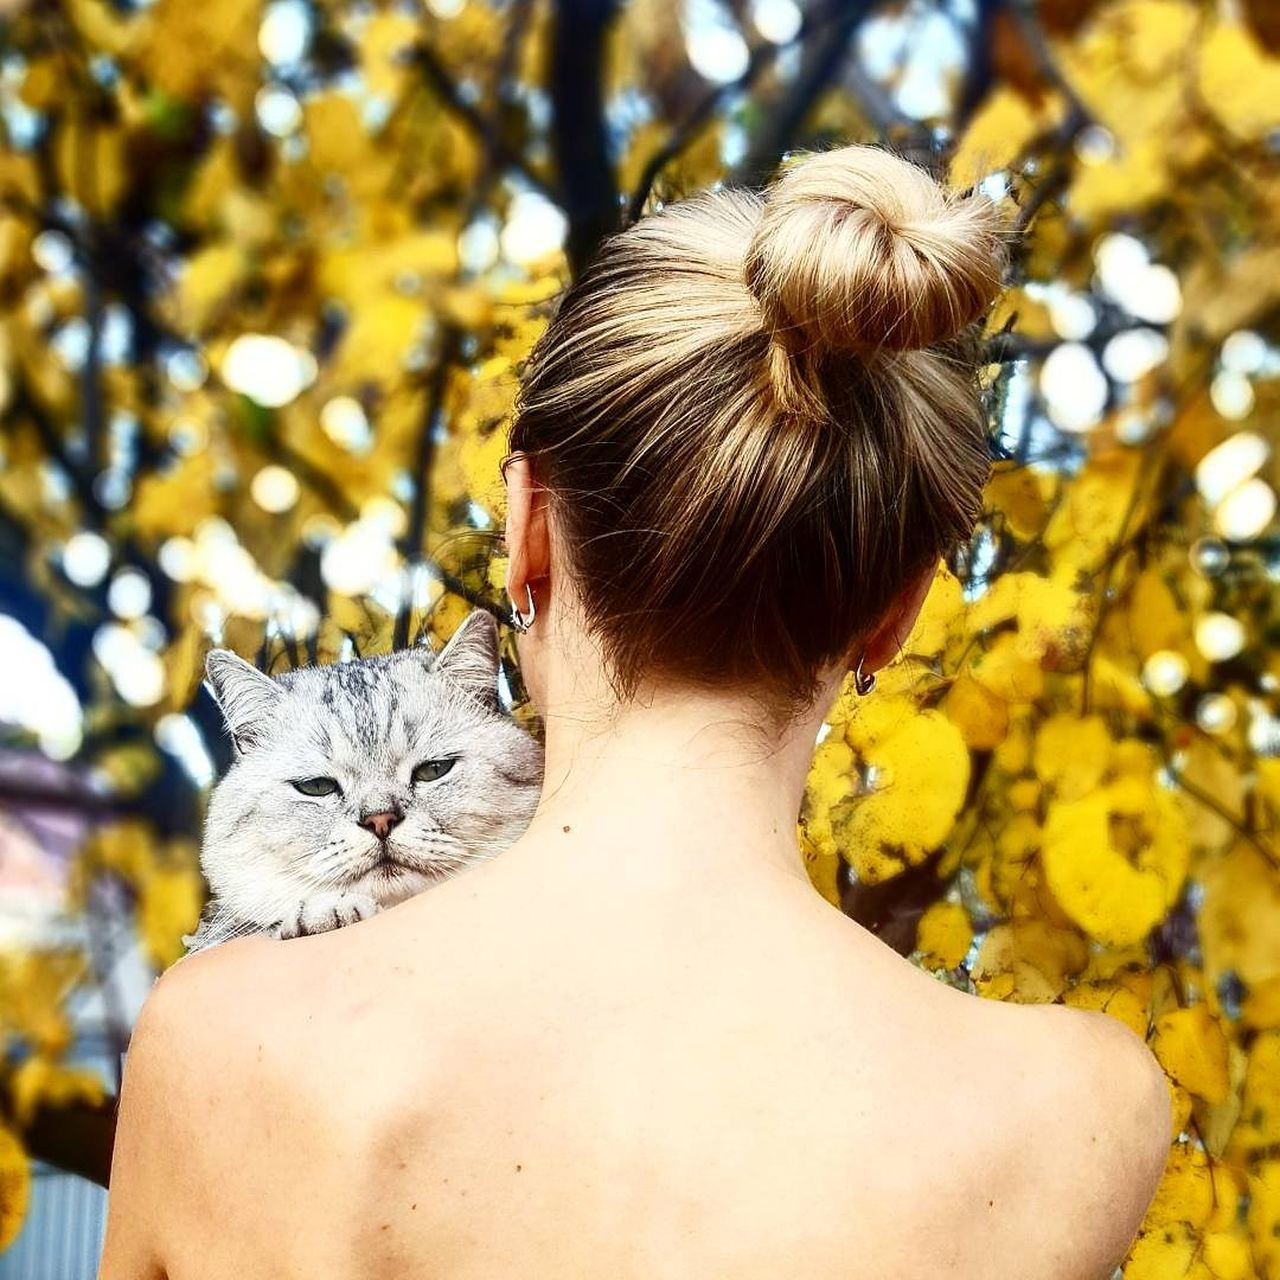 rear view, pets, one animal, domestic animals, real people, domestic cat, one person, mammal, lifestyles, day, feline, sitting, leisure activity, women, outdoors, nature, young women, flower, young adult, people